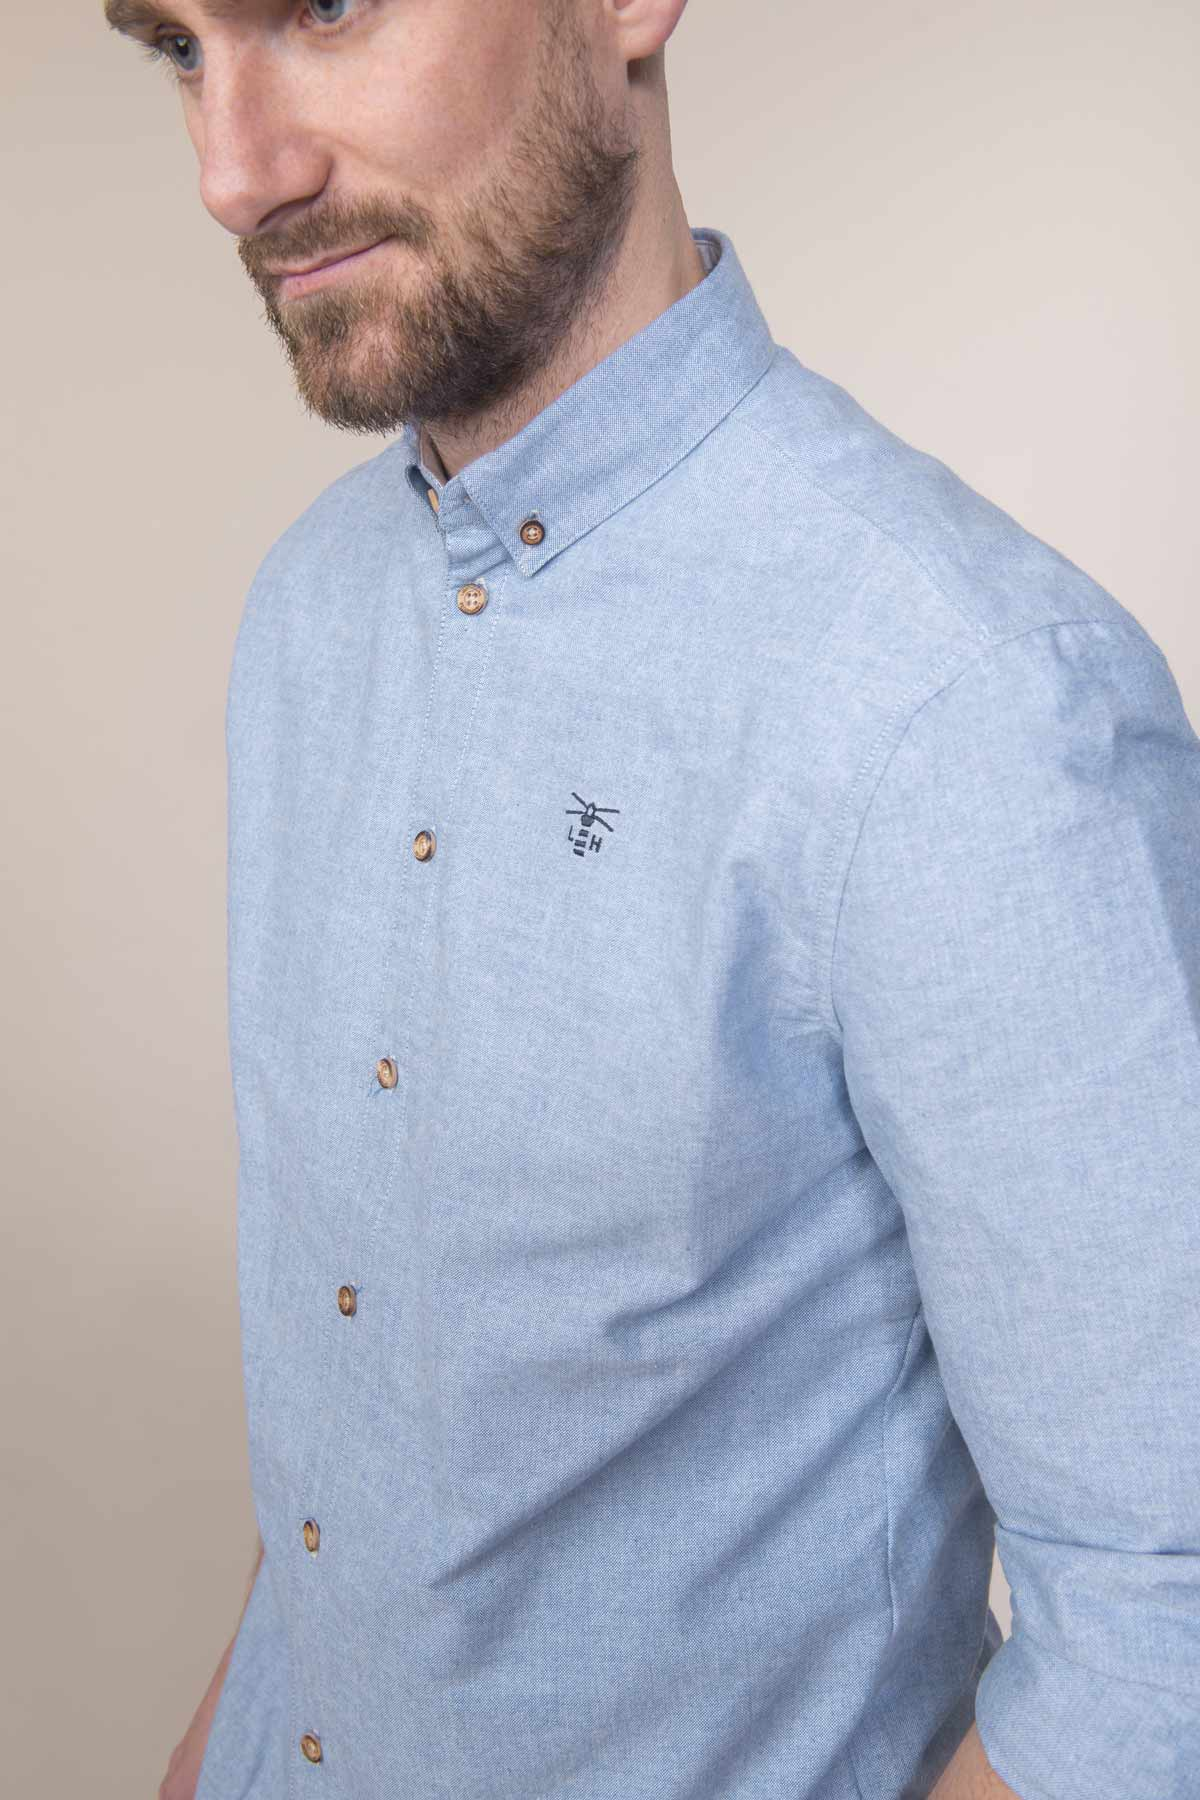 Lighthouse Tide men's light oxford shirt